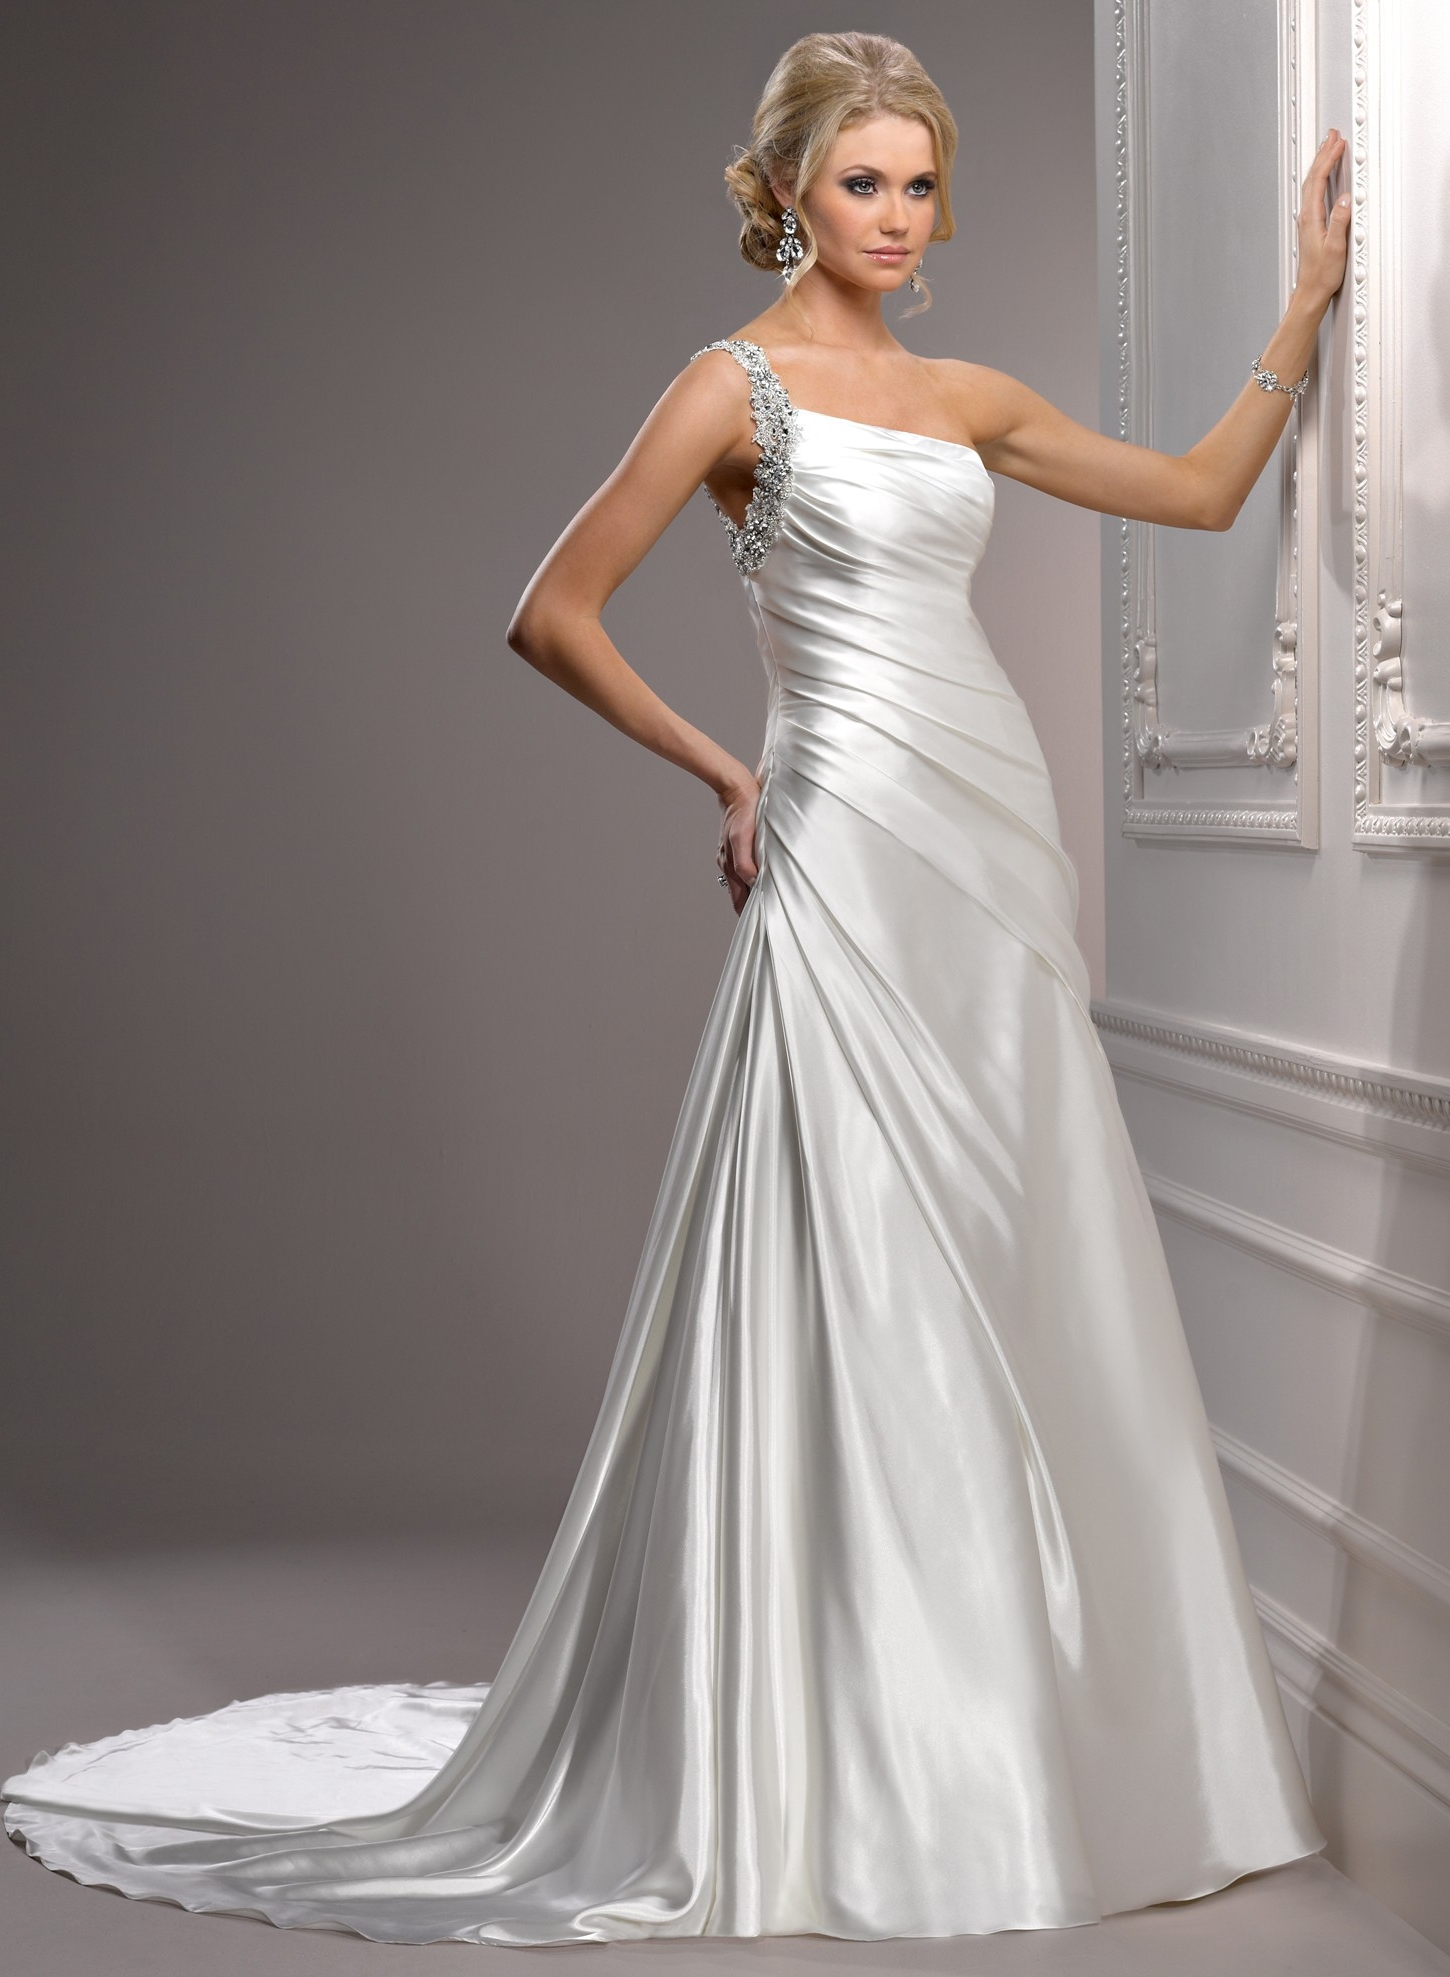 What Kind Of Wedding Dress Should You Wear